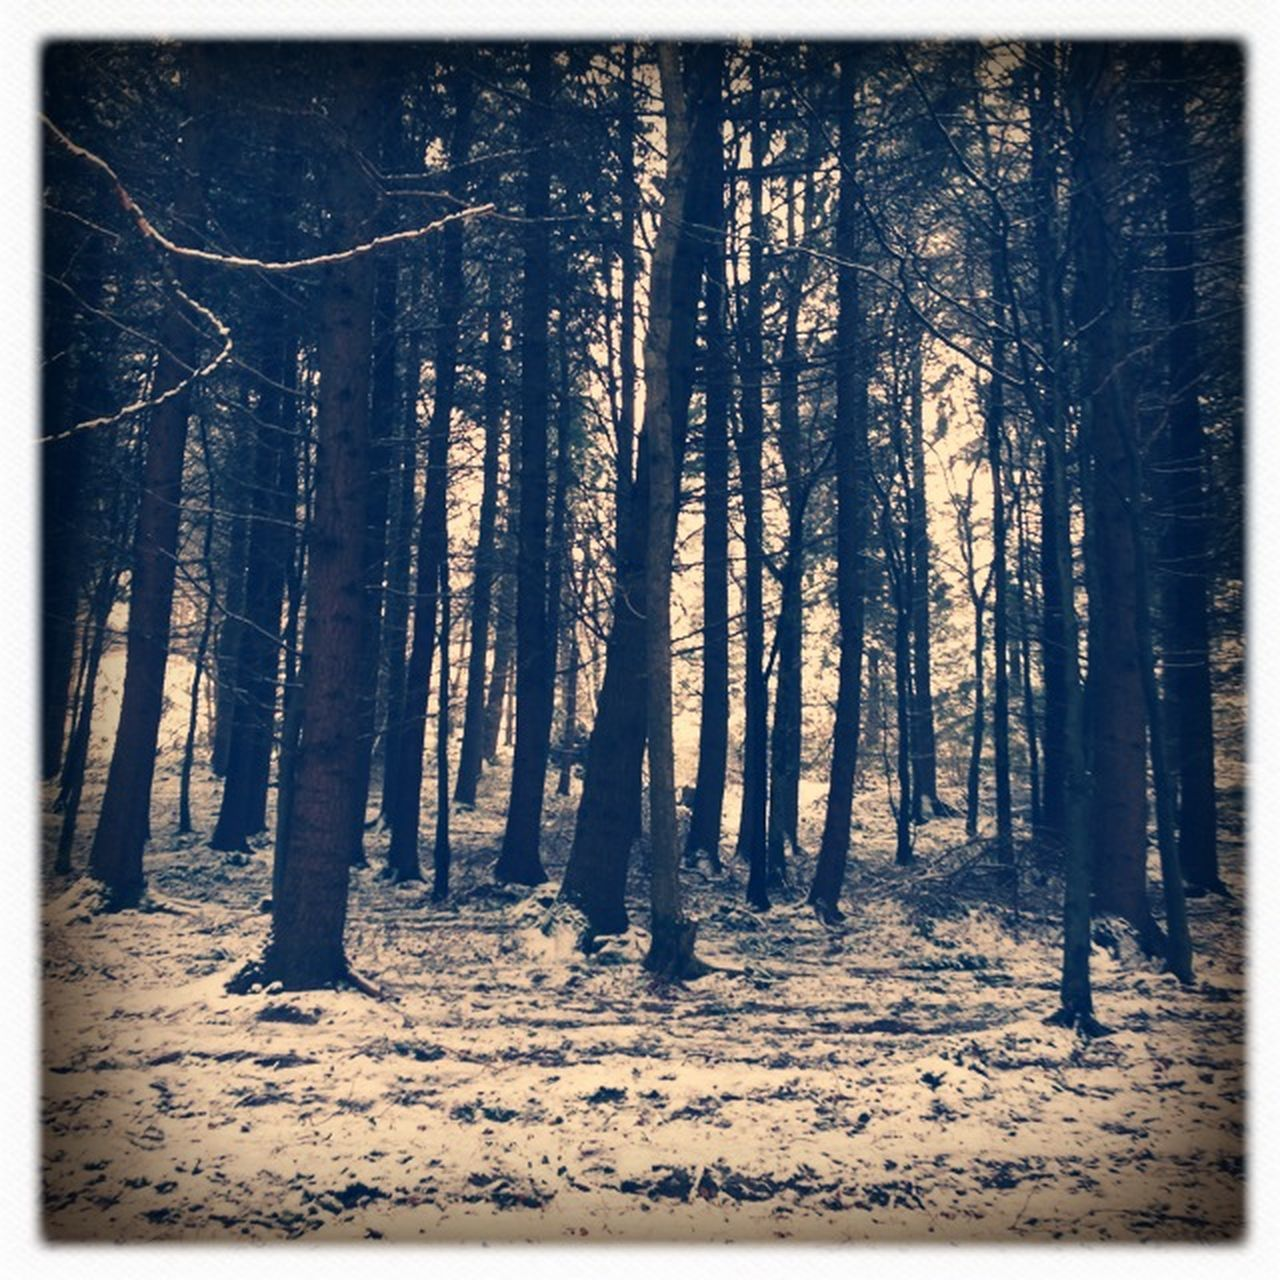 tree, nature, forest, tree trunk, no people, landscape, outdoors, snow, winter, beauty in nature, day